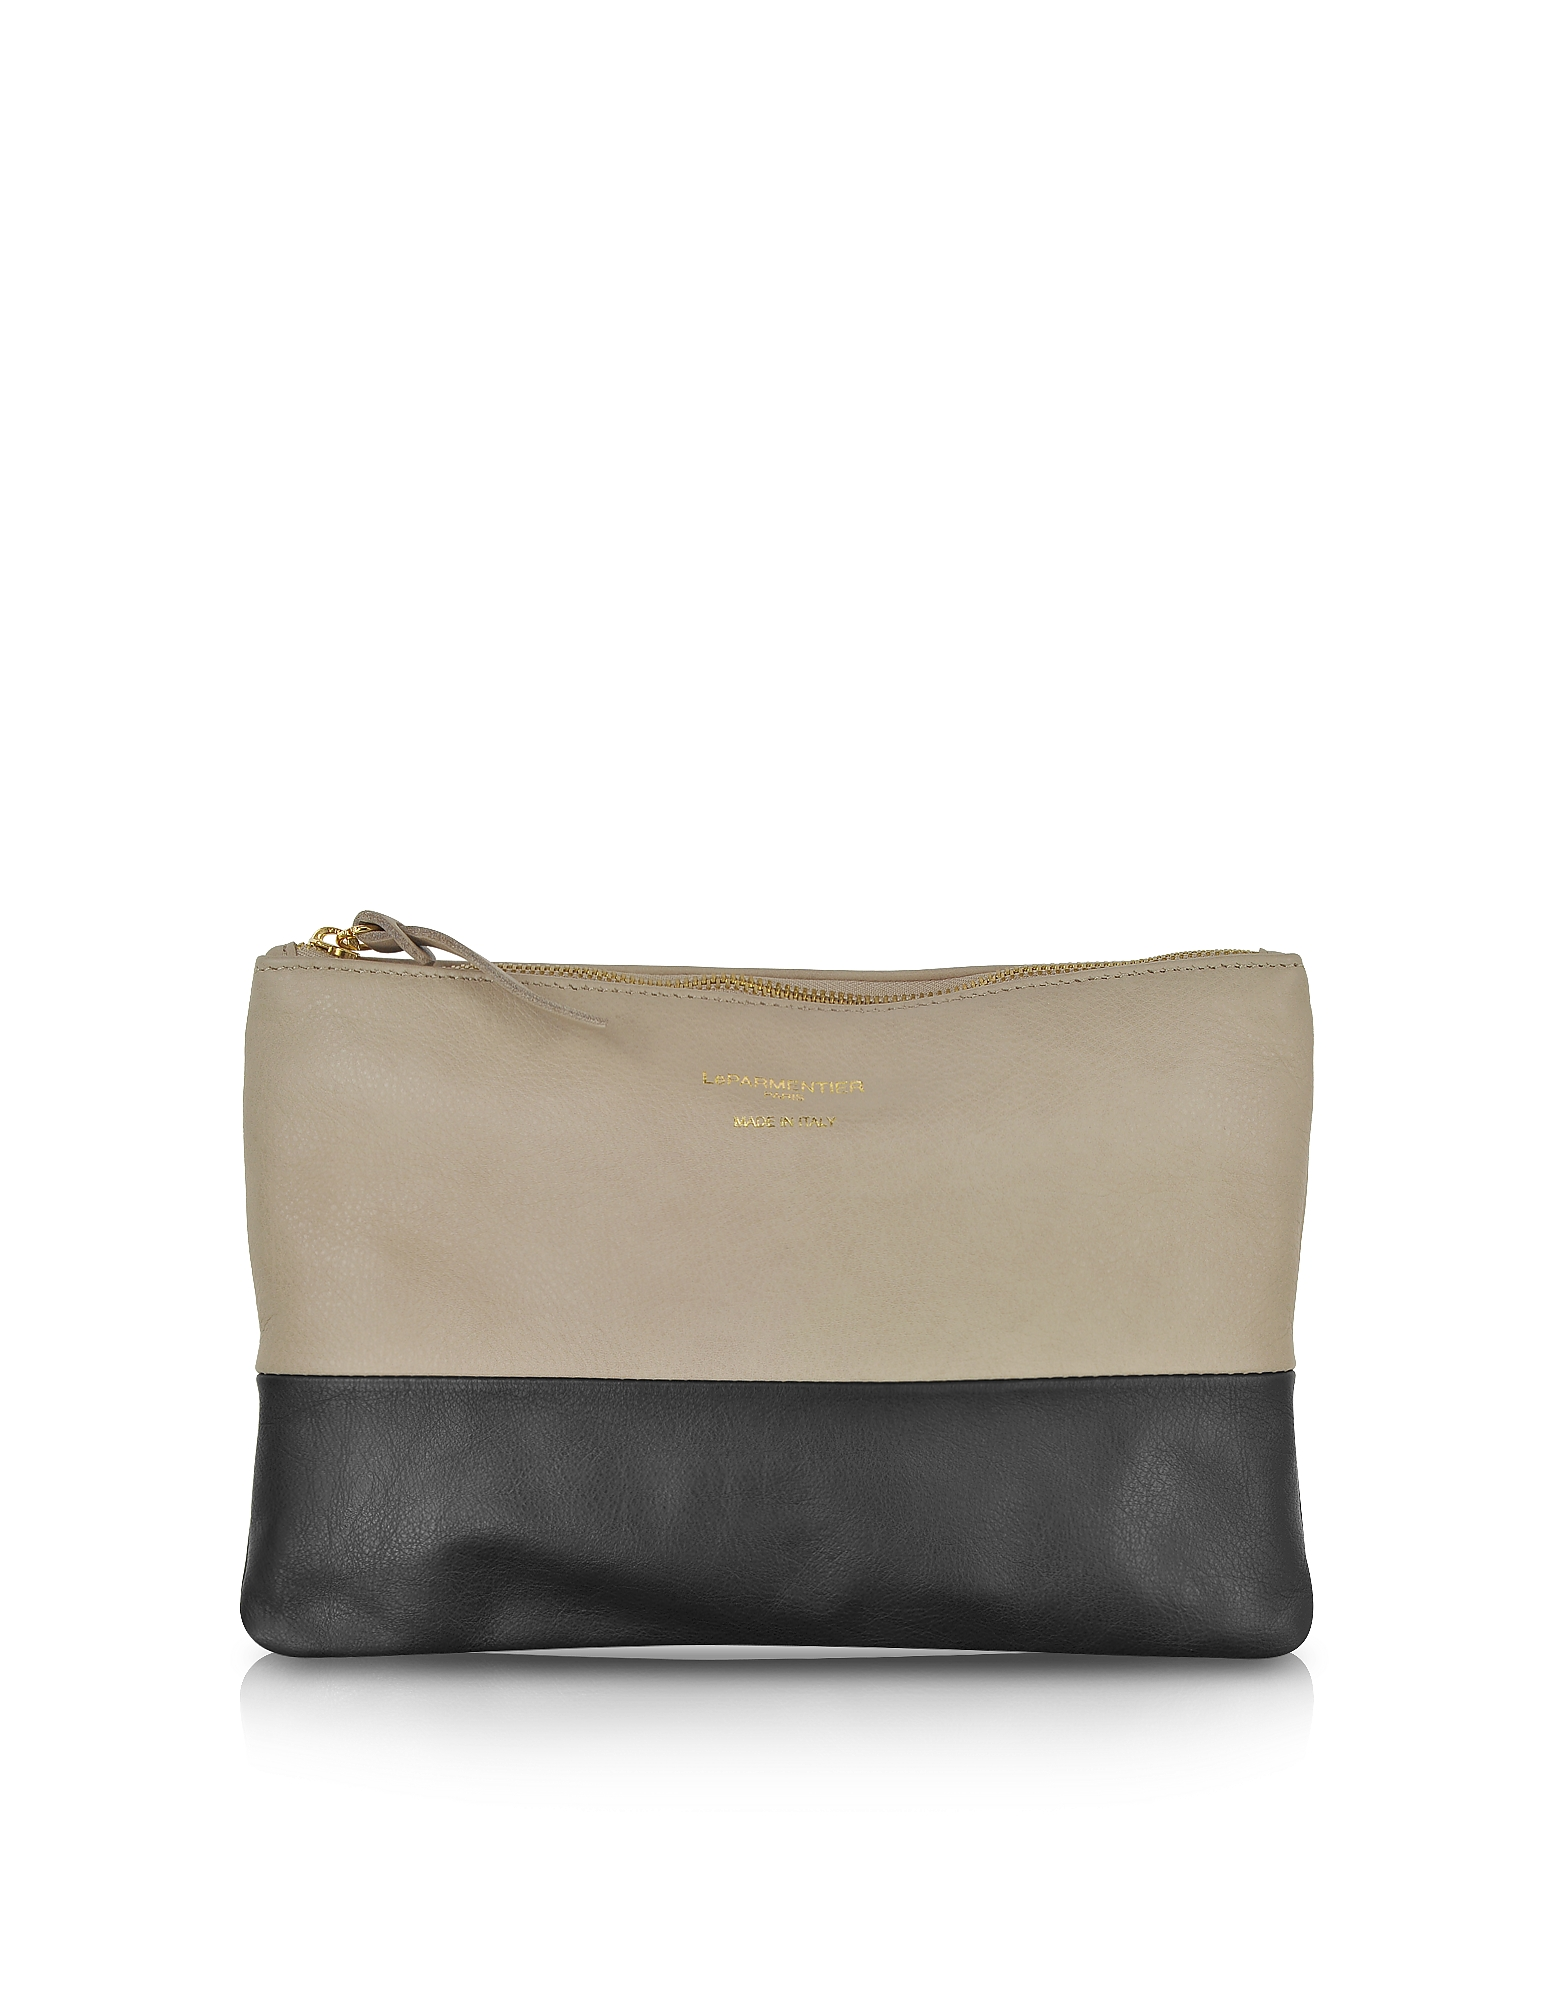 Le Parmentier Handbags, Color Block Nappa Leather Zip Pouch